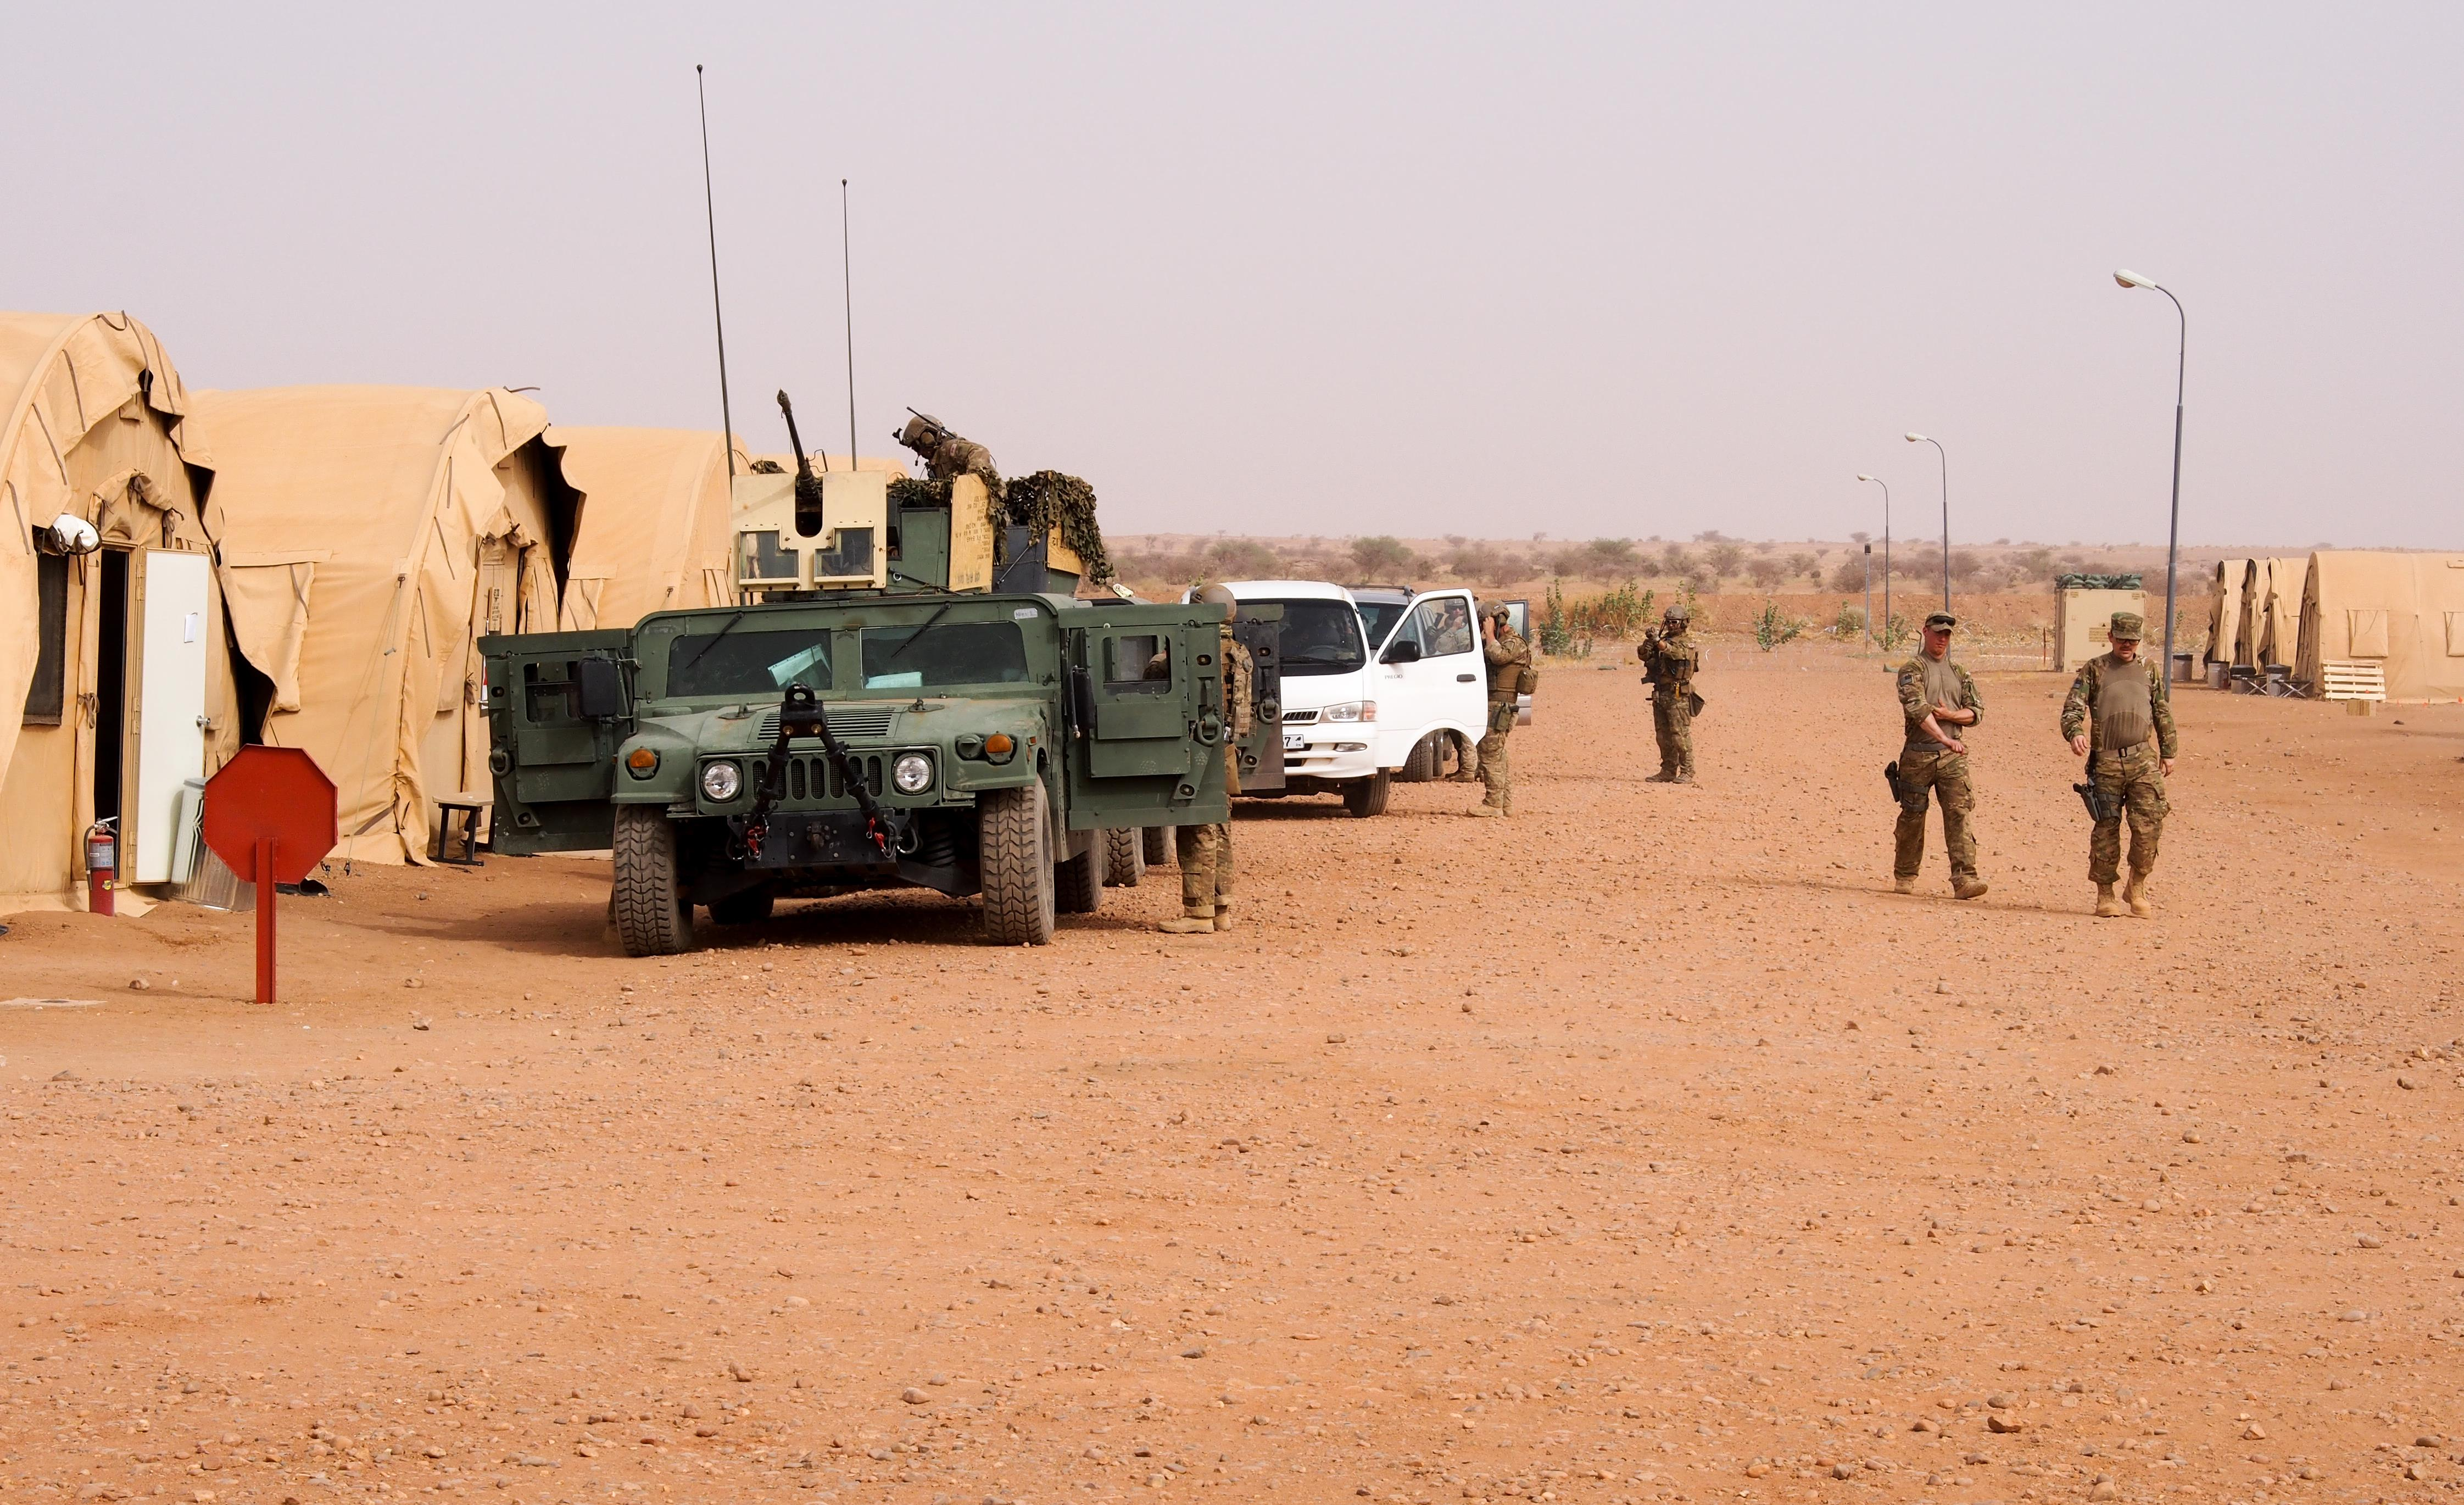 U S  Military Building $100 Million Drone Base in Africa